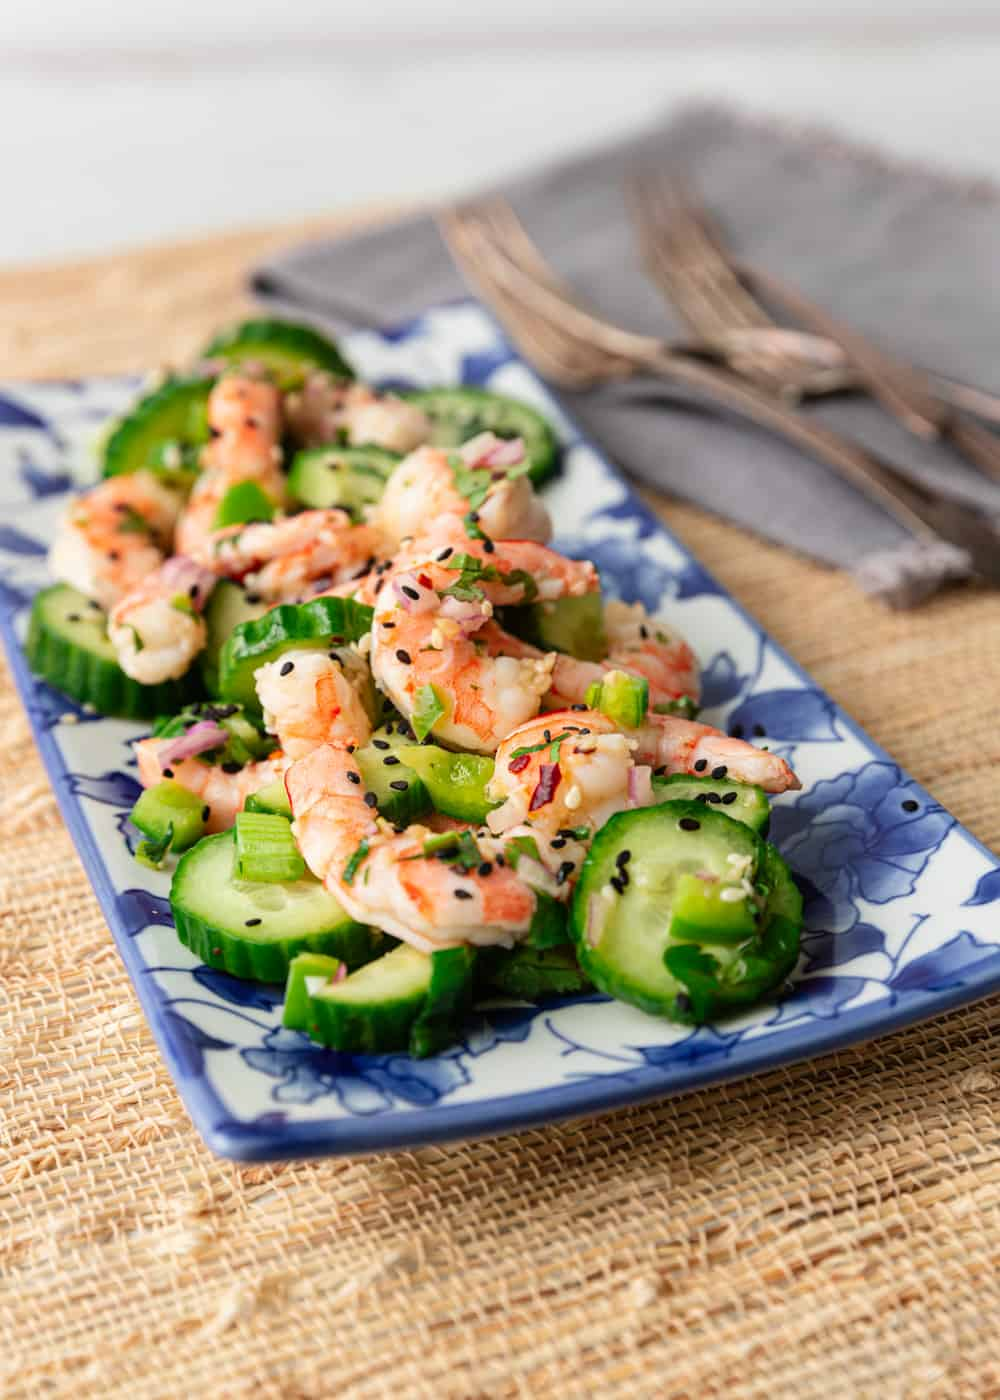 shrimp salad recipe on Asian tray